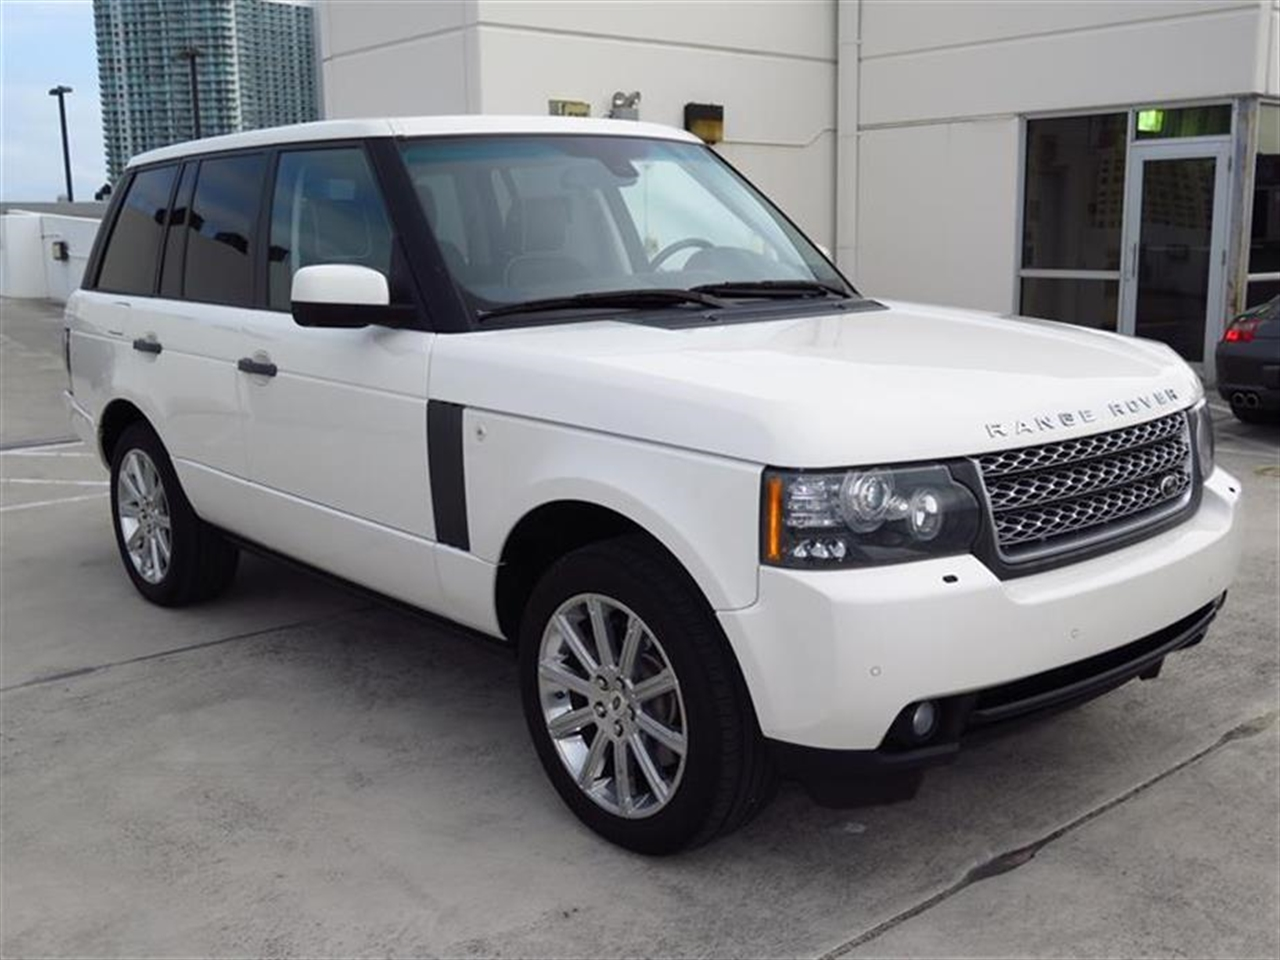 2010 LAND ROVER RANGE ROVER 4WD 4dr HSE 53698 miles 10 piece wood trim on fascia  doors 123 t